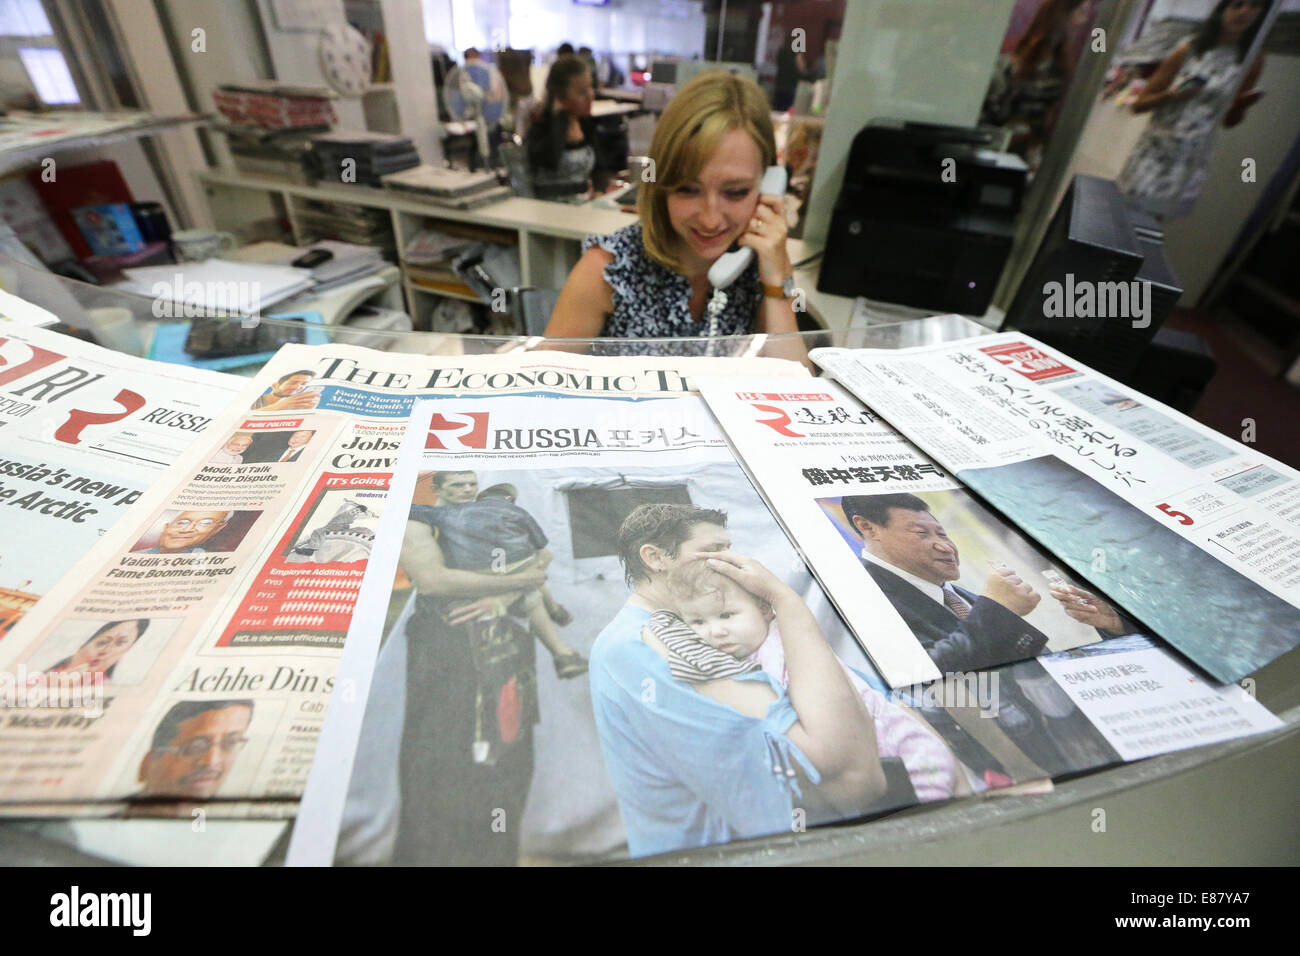 MOSCOW, RUSSIA. OCTOBER 2, 2014. A girl sitting at the reception desk at the offices of the 'Russia Beyond the - Stock Image